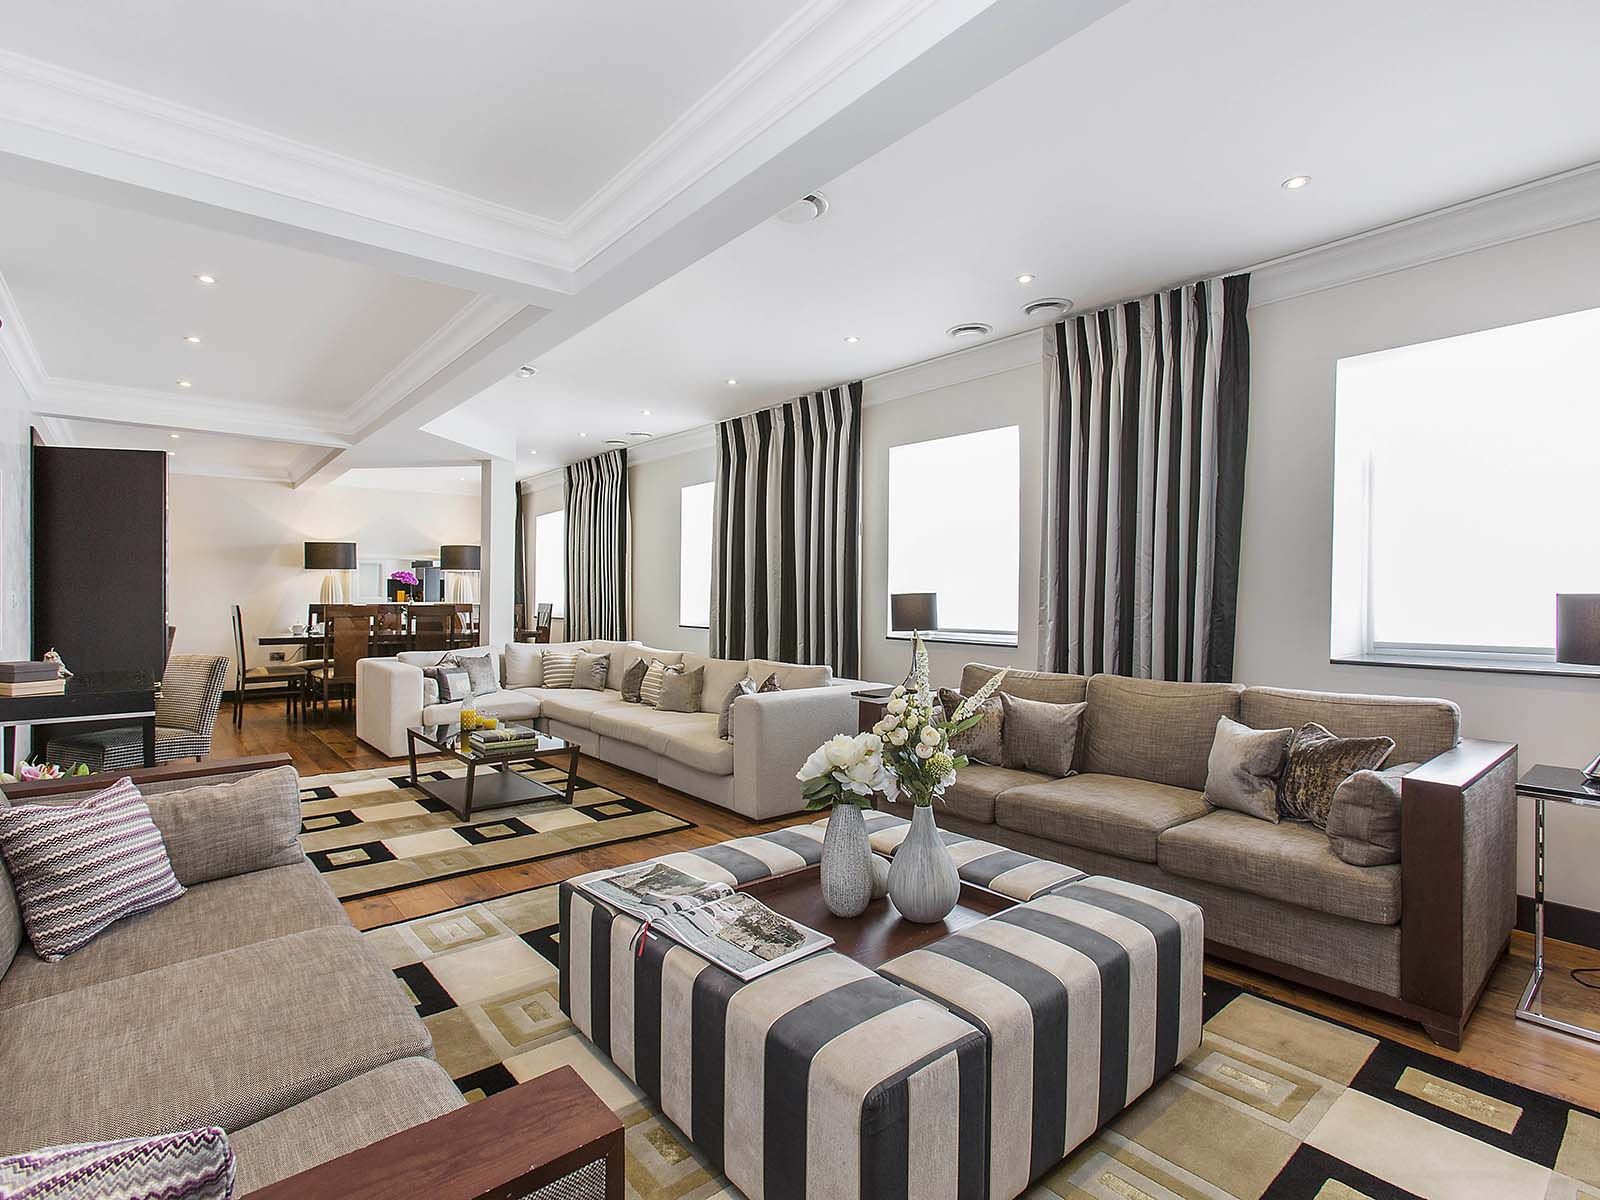 Luxurious furnishings at 130 Queens Gate Apartments, South Kensington, London - Citybase Apartments